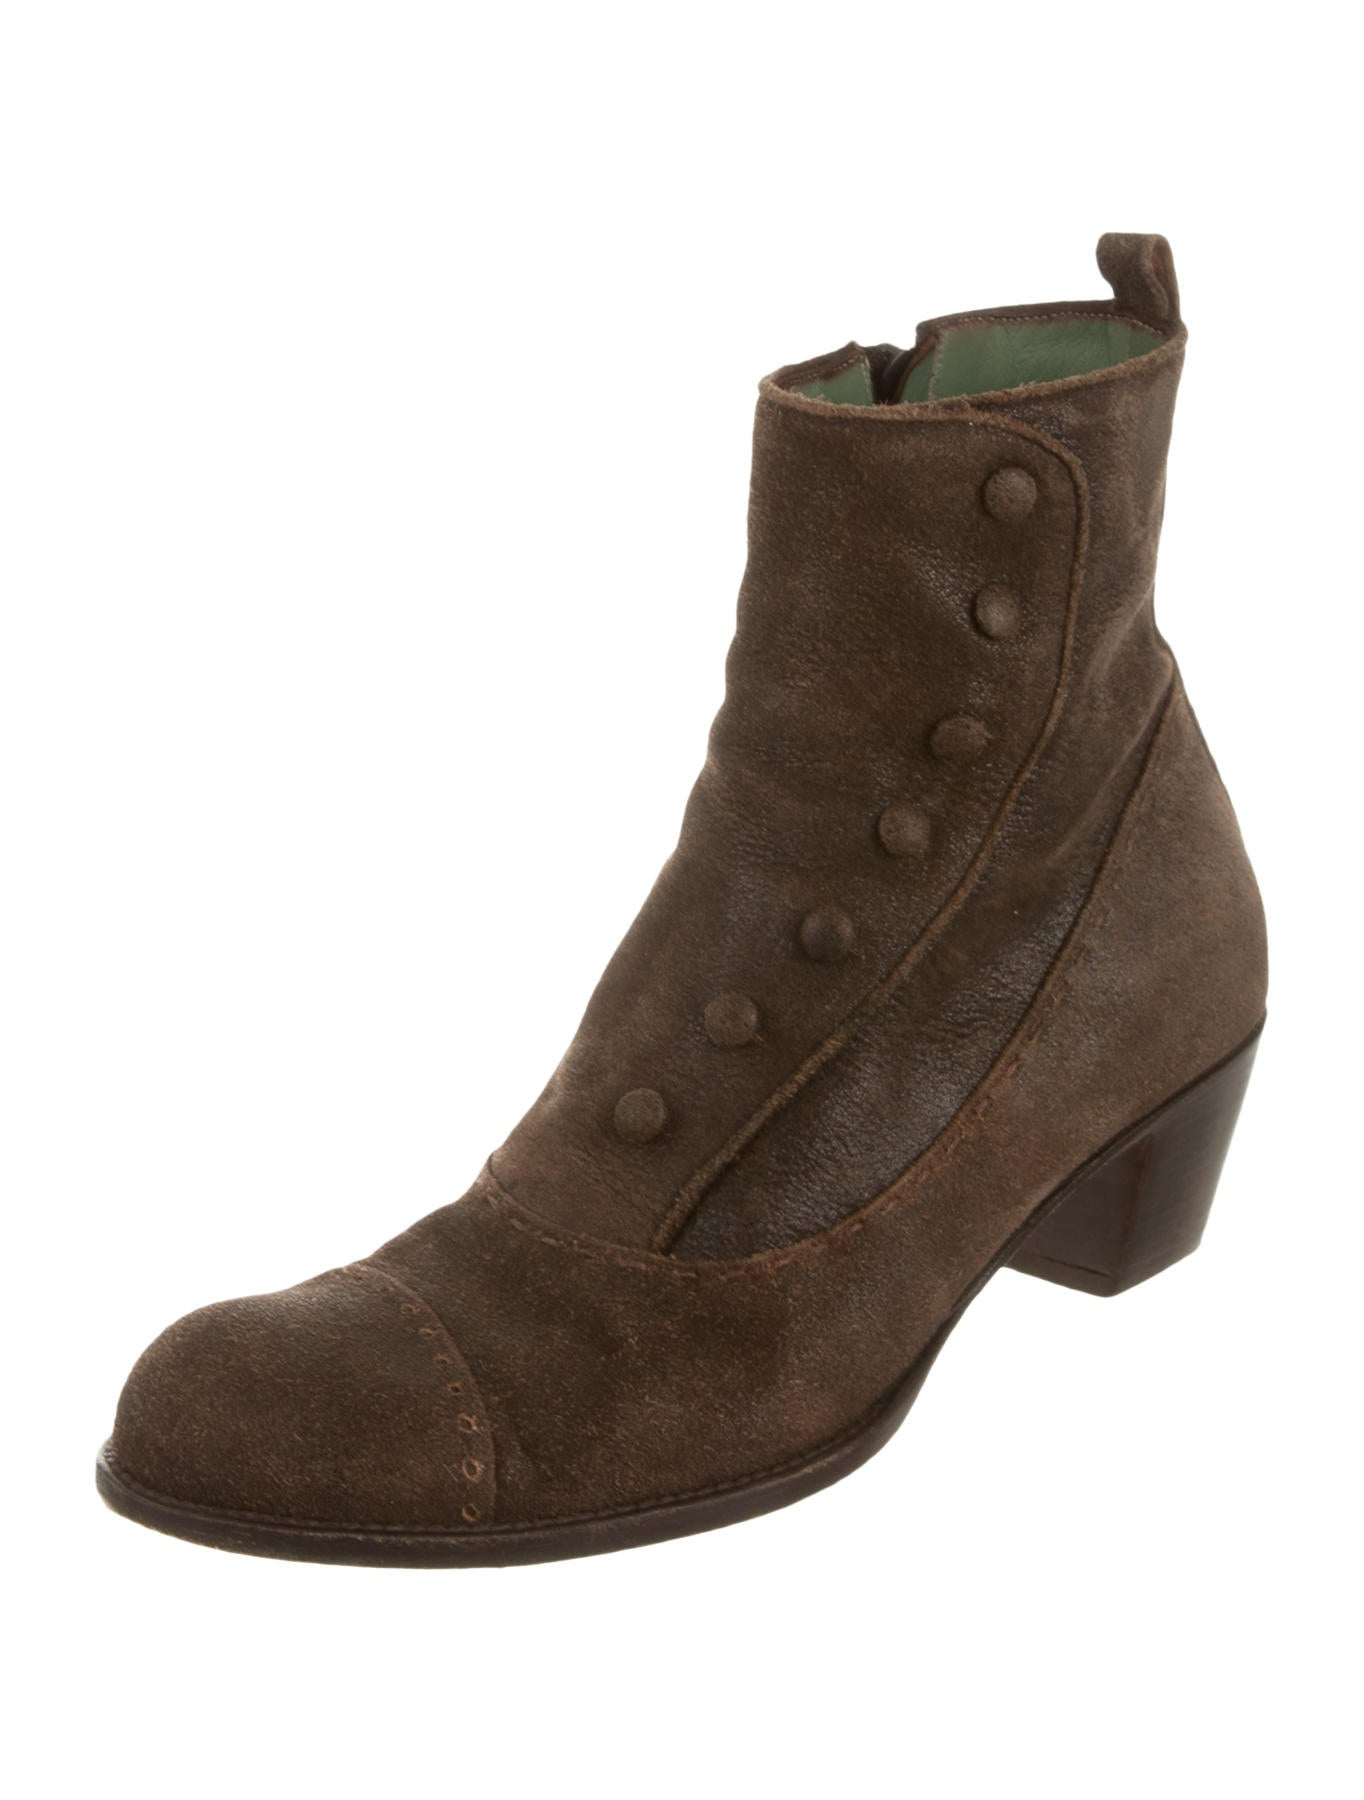 buy cheap view Henry Cuir Leather Ankle Boots prices online discount 2014 1XOkUxWF